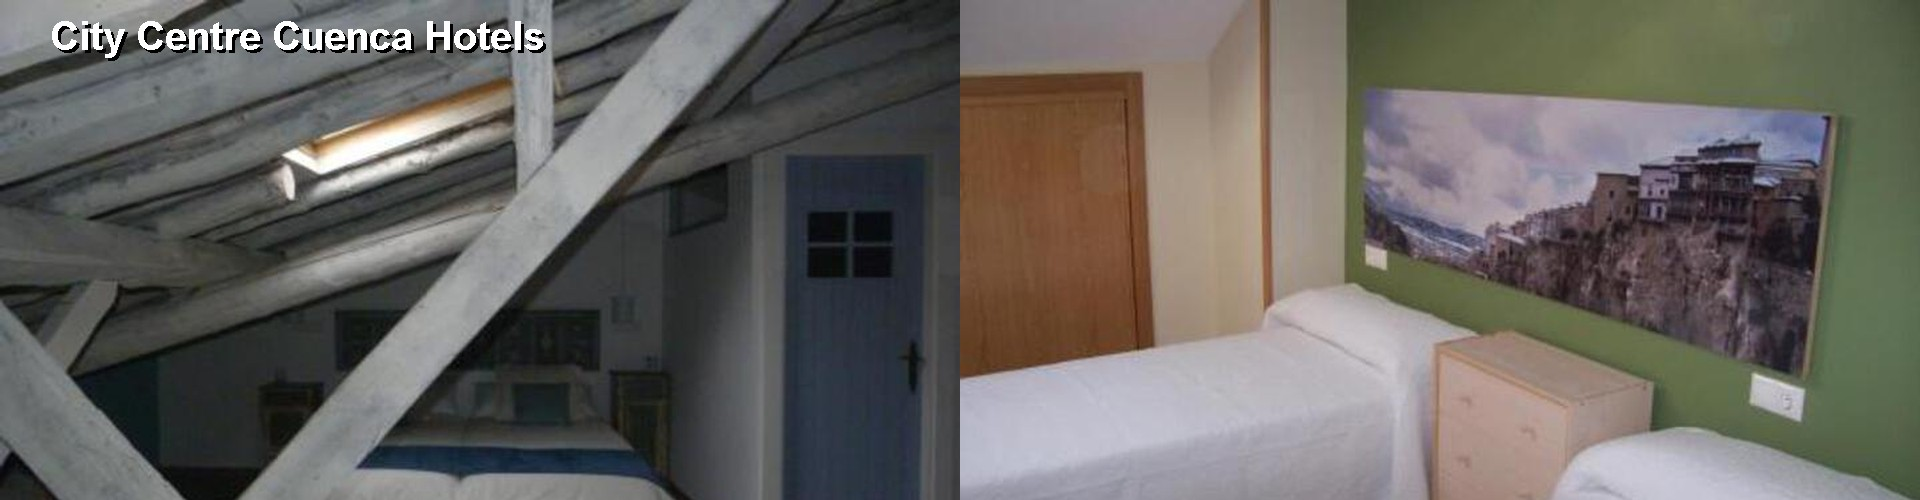 2 Best Hotels near City Centre Cuenca